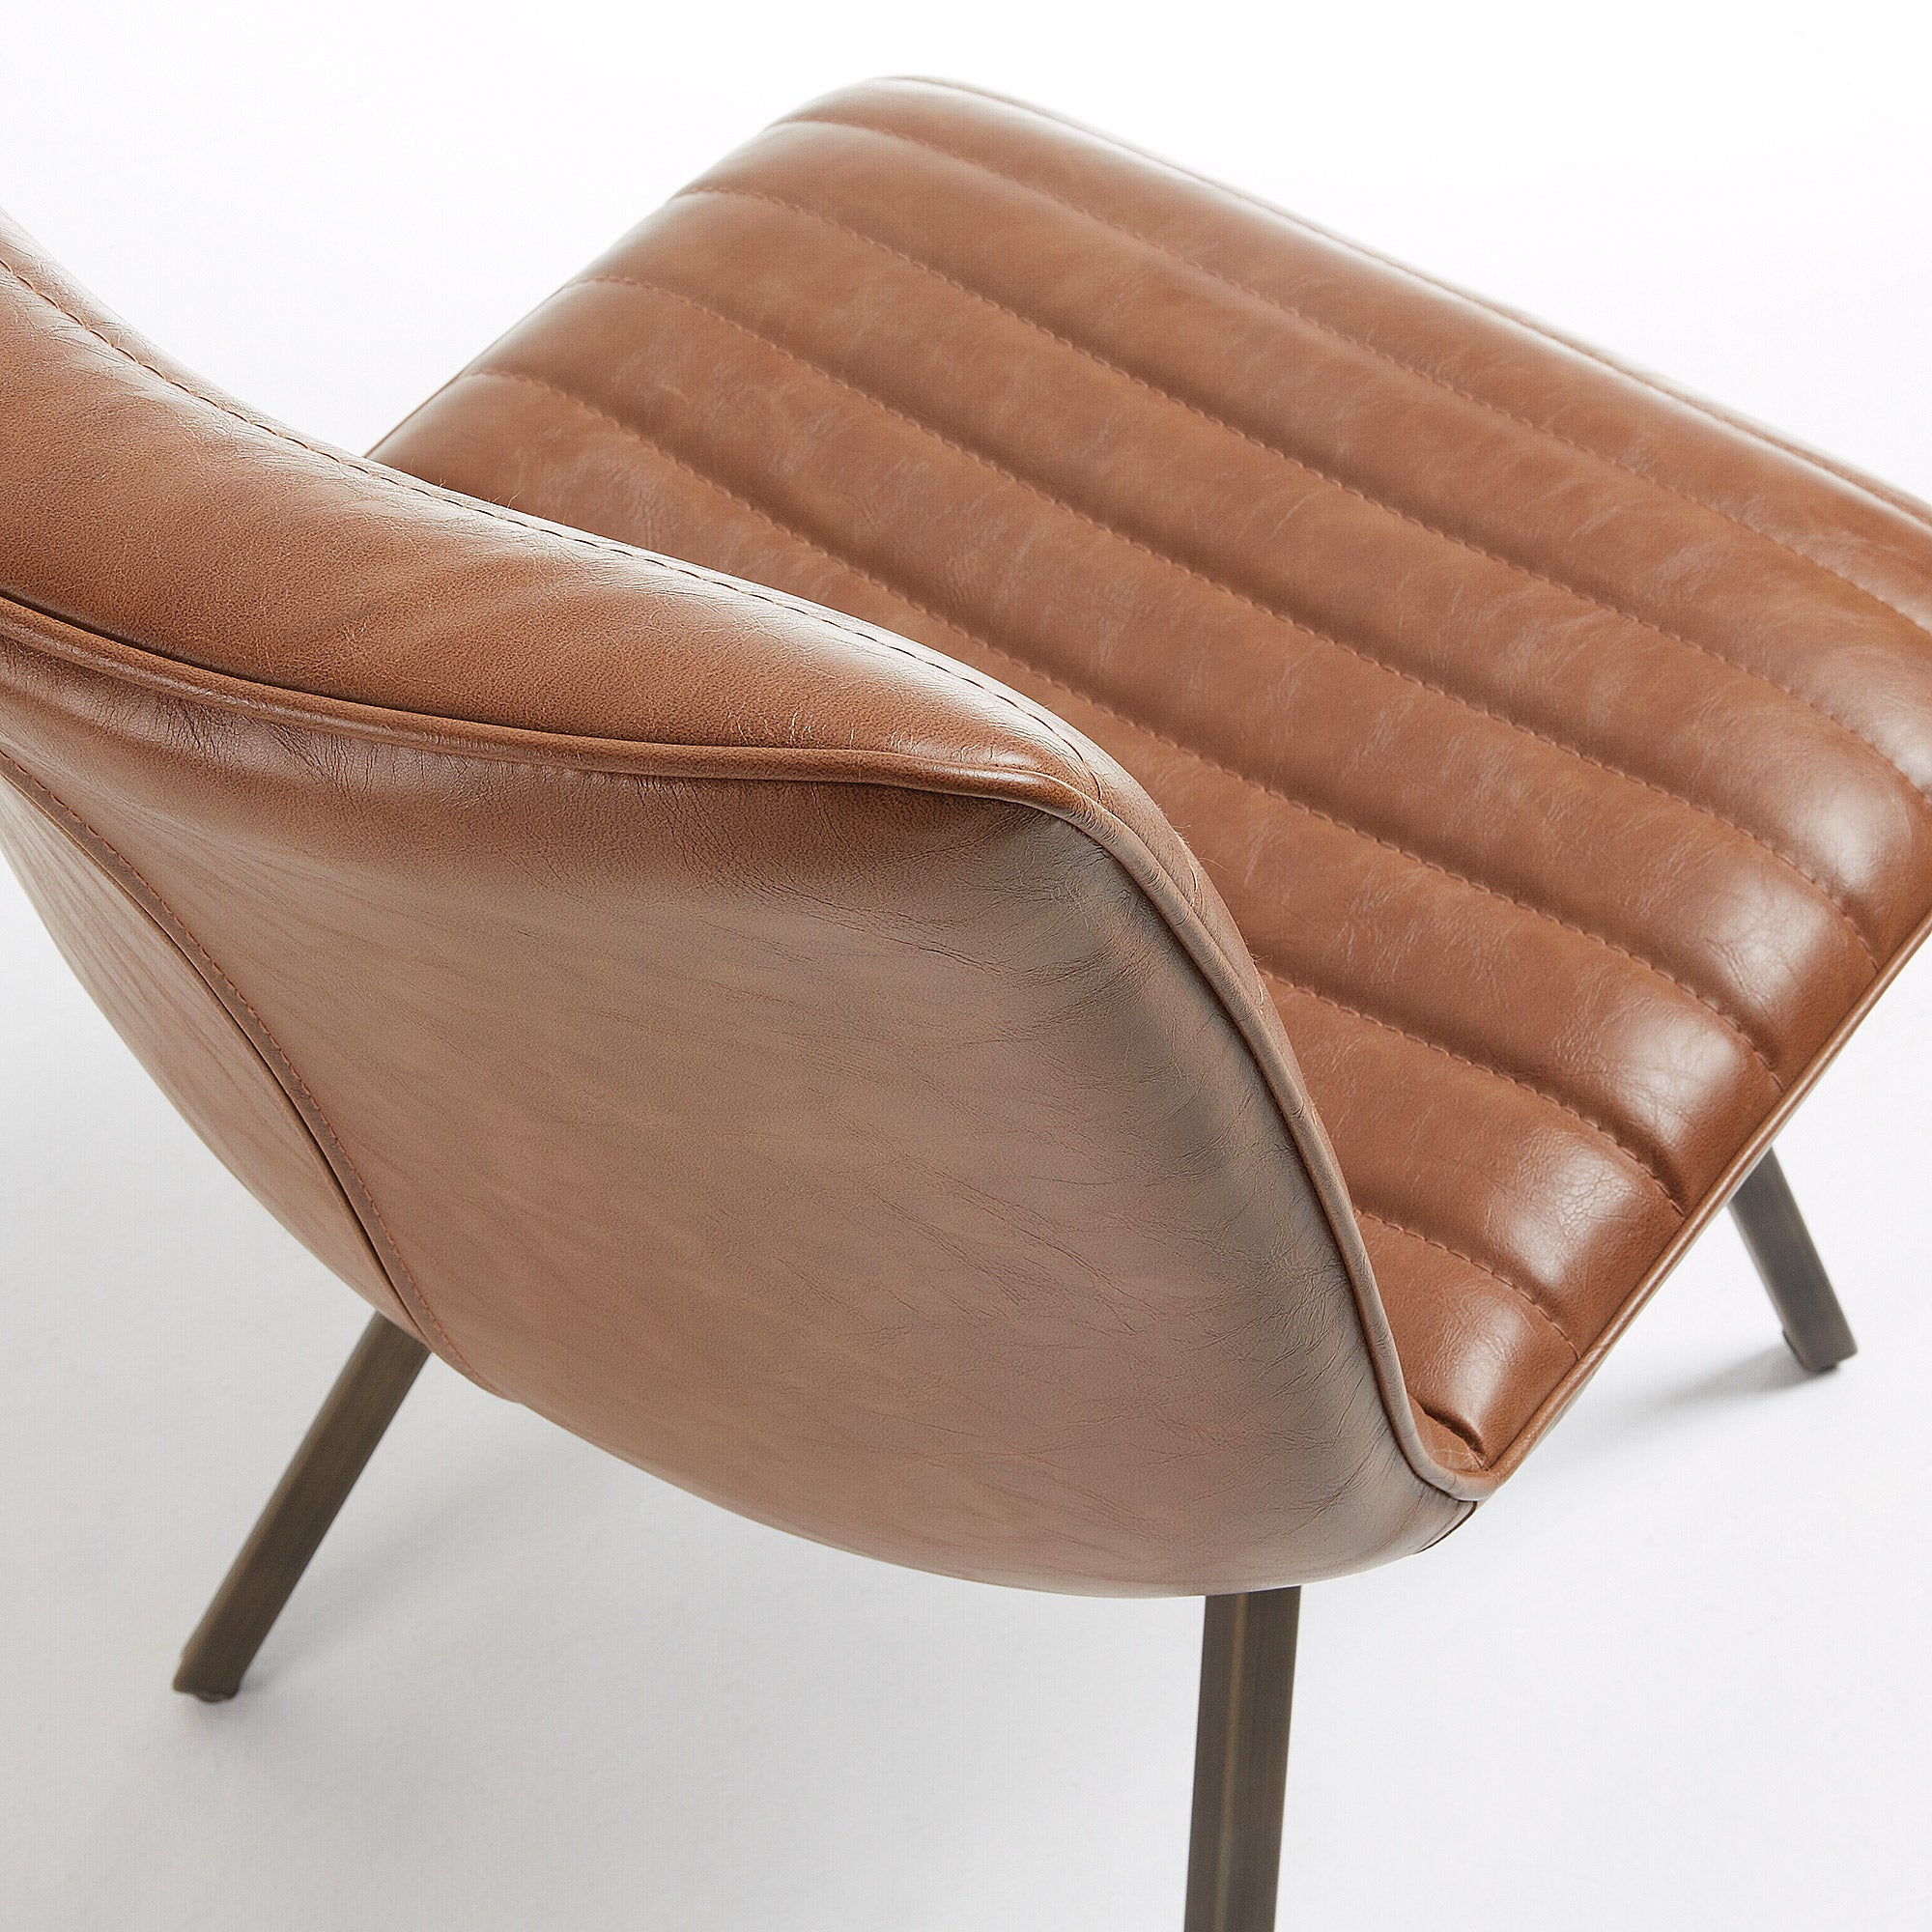 Lianne Chair Upholstered in Rust Synthetic leather